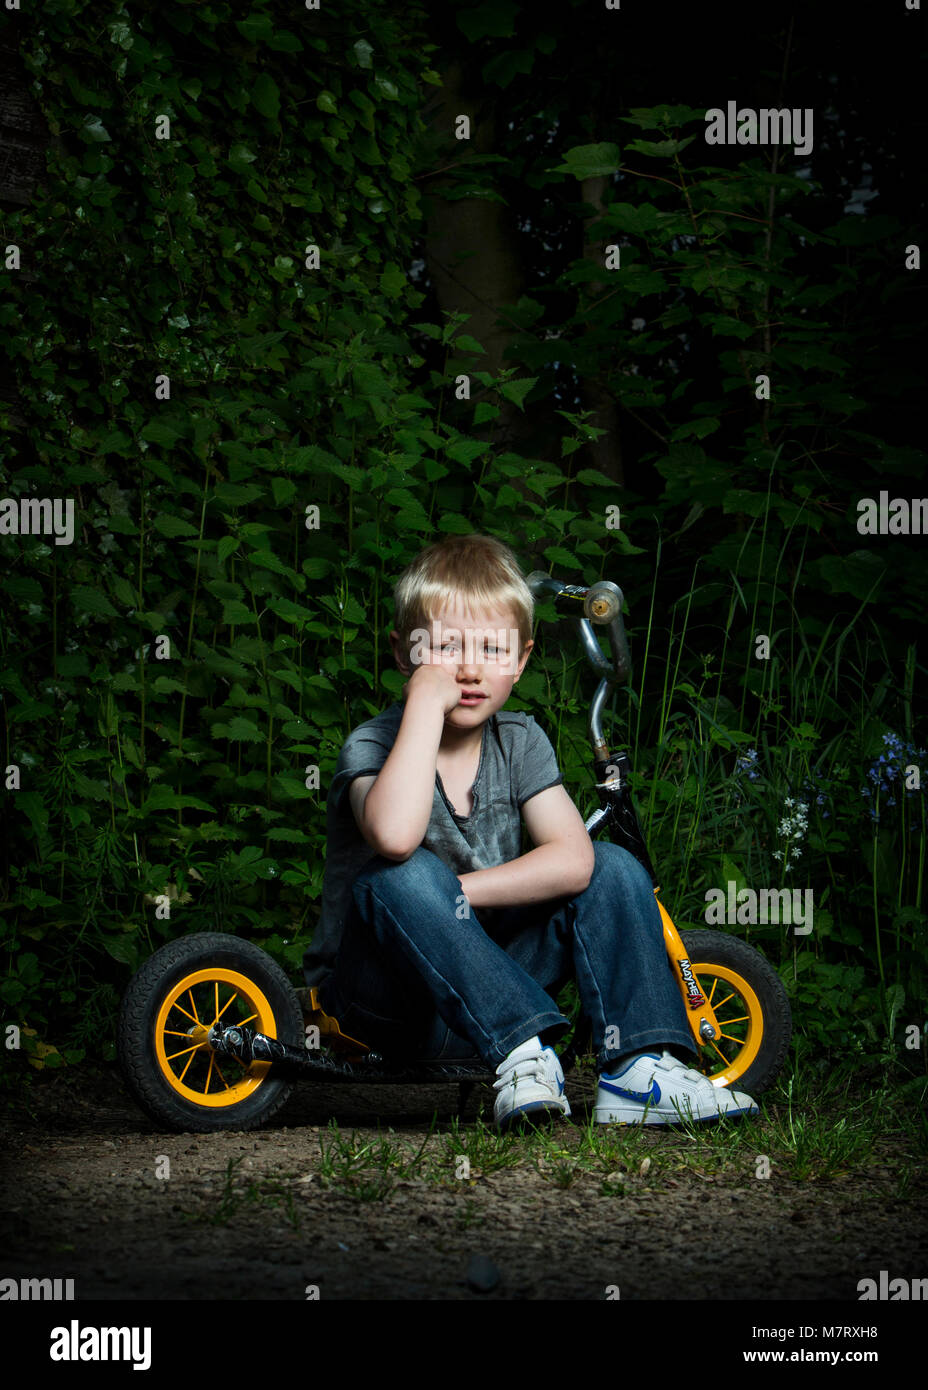 8 year old boy sat on a scooter on a rural path - Stock Image